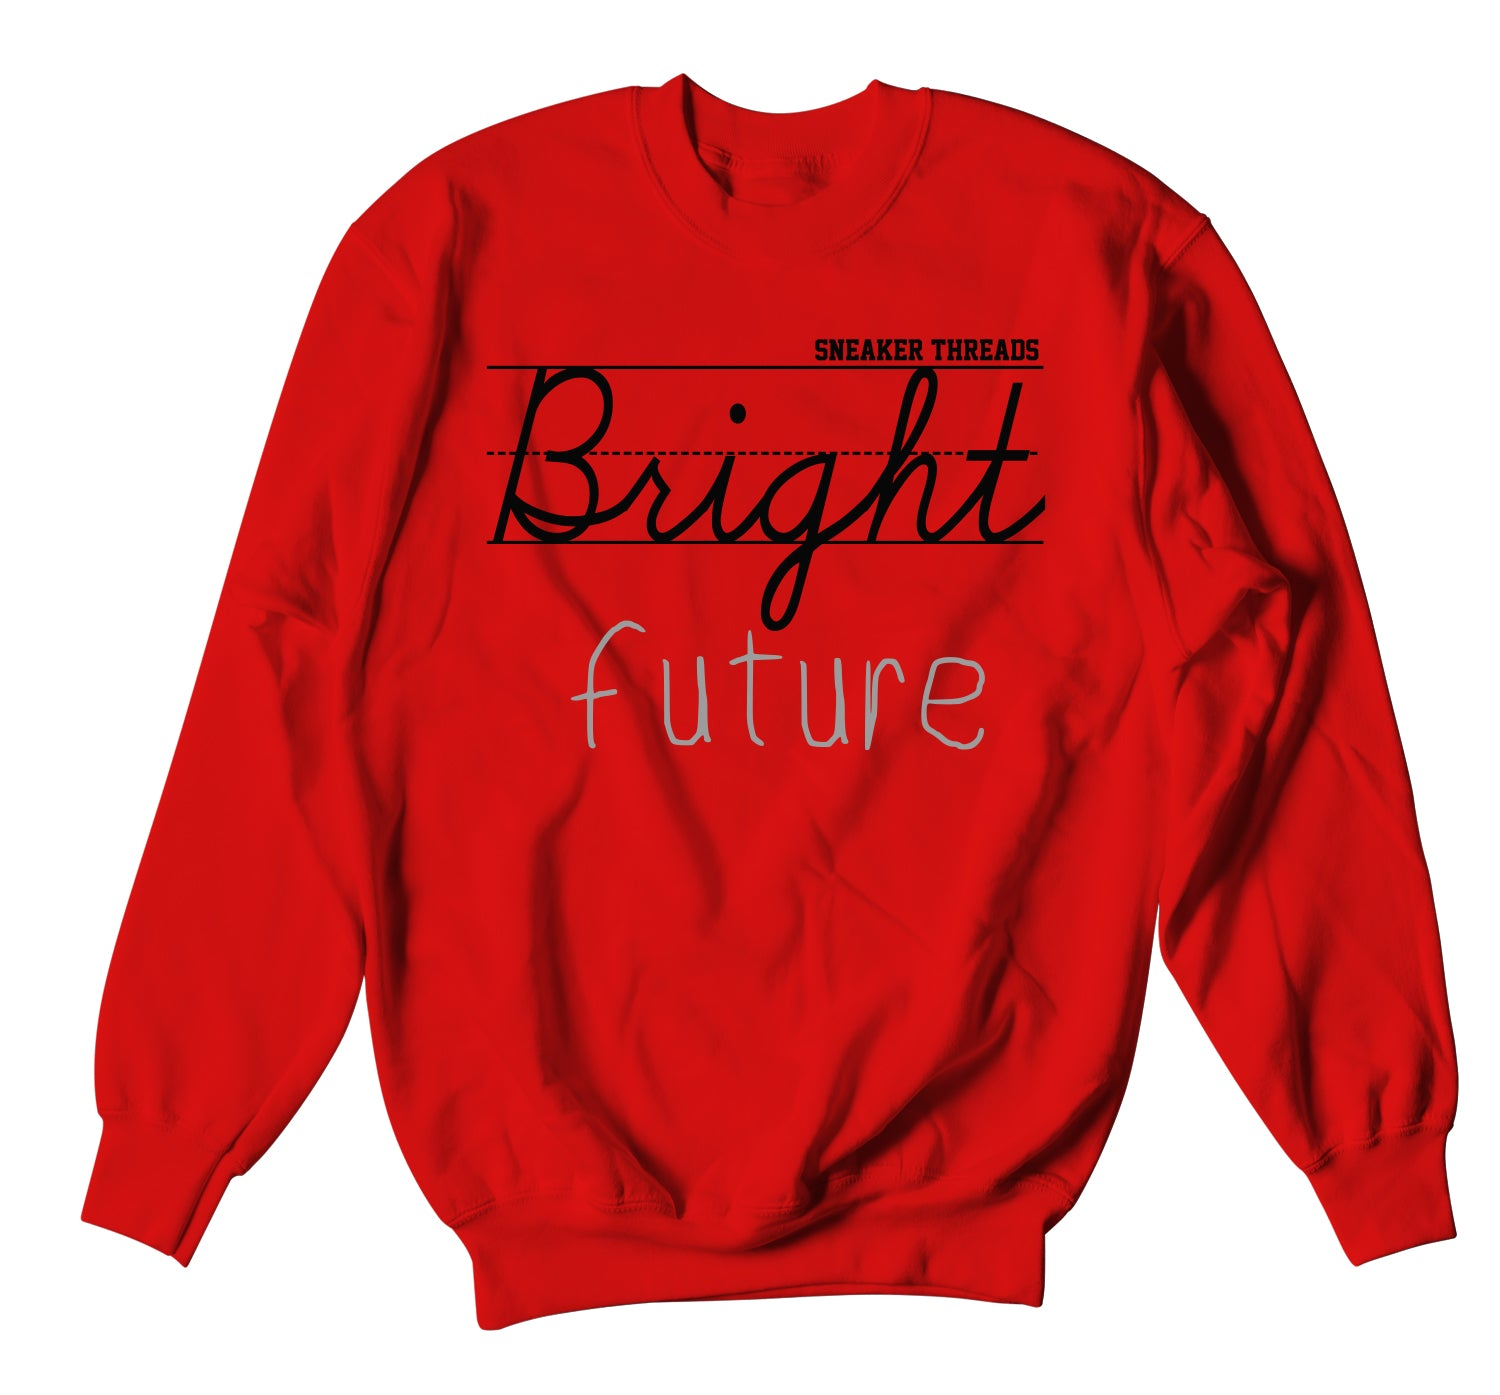 Jordan 3 Red Cement Bright Future Sweater